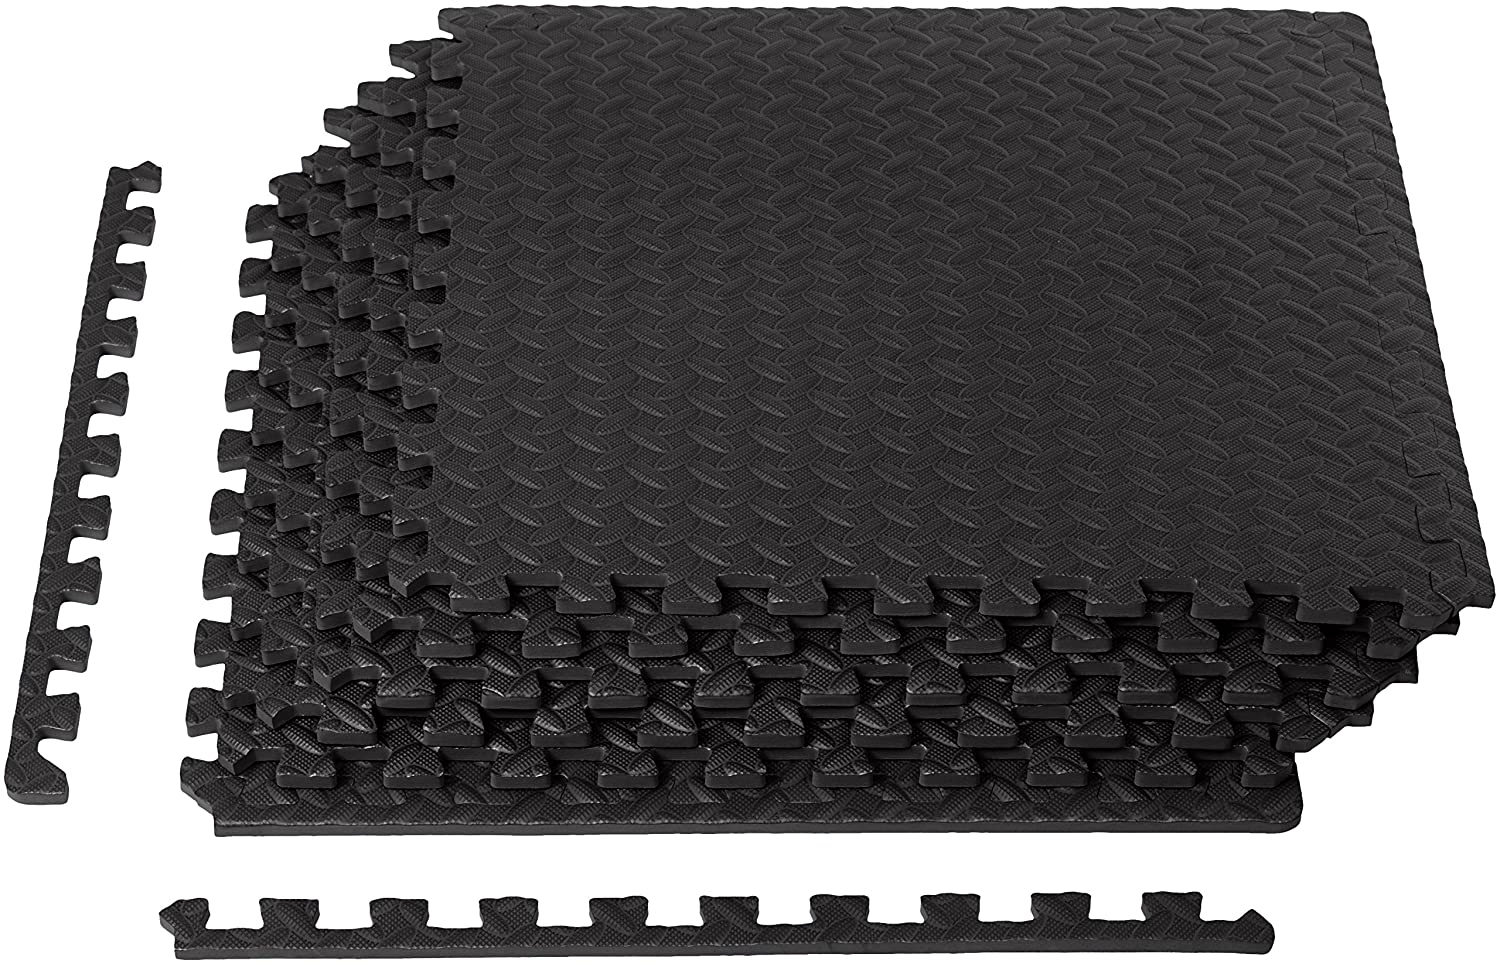 AmazonBasics Exercise Mat with EVA Foam Interlocking Tiles